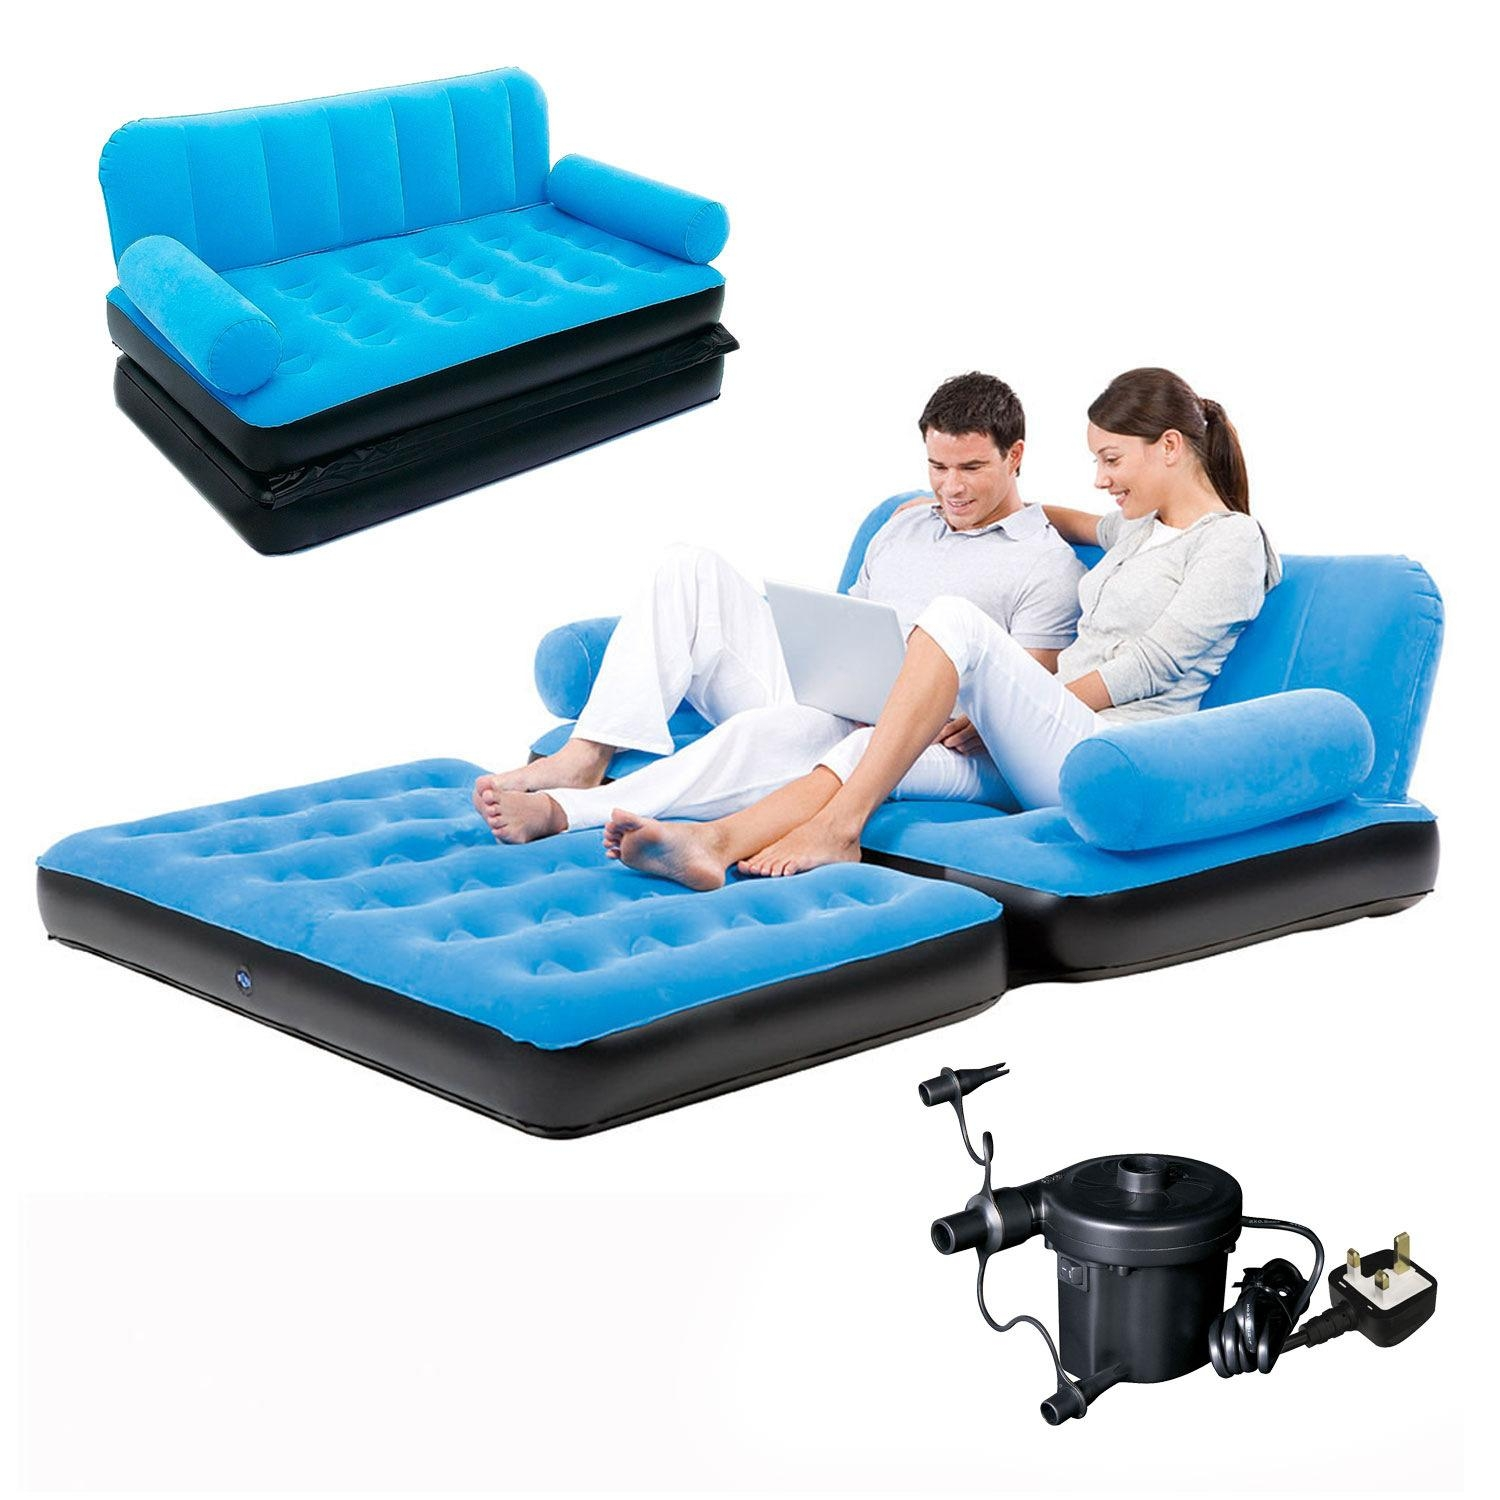 Inflatable Sofa Bed | Roselawnlutheran With Regard To Intex Air Couches (Image 3 of 20)